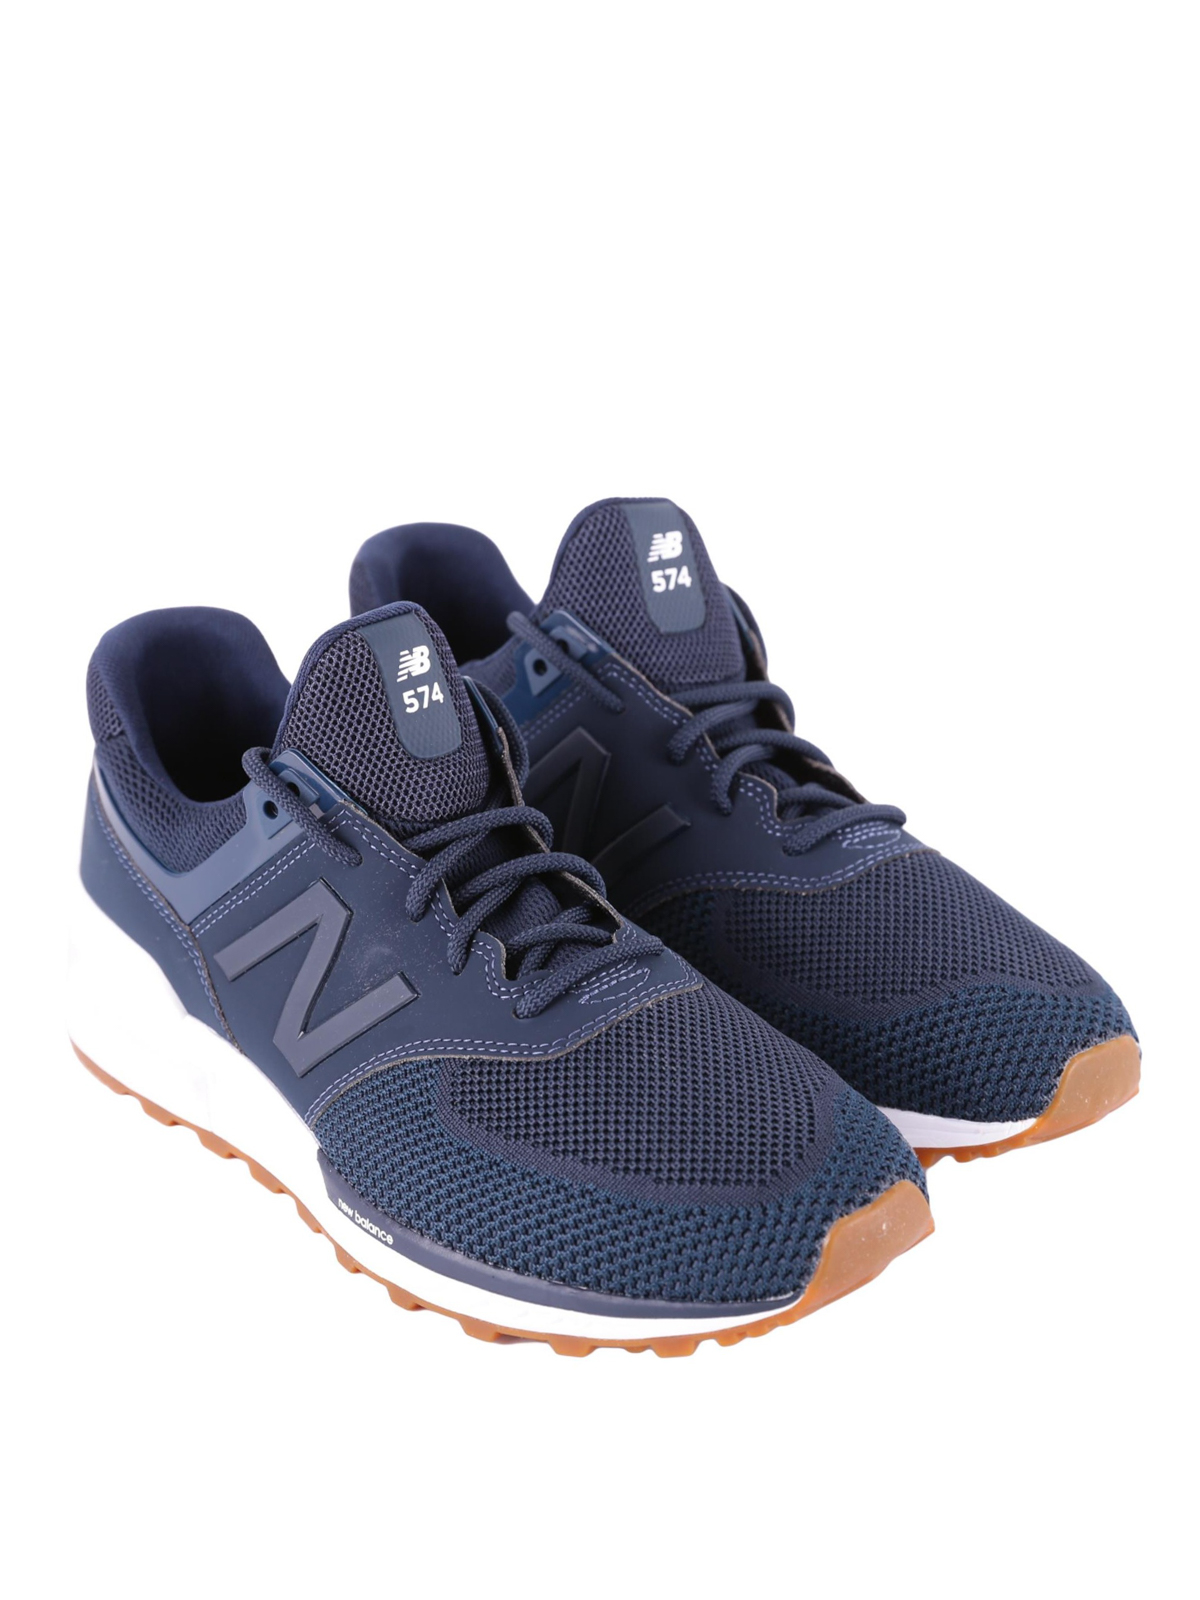 huge discount 6fe95 63ac7 New Balance - 574 Sport blue sneakers - trainers - MS574EMB ...